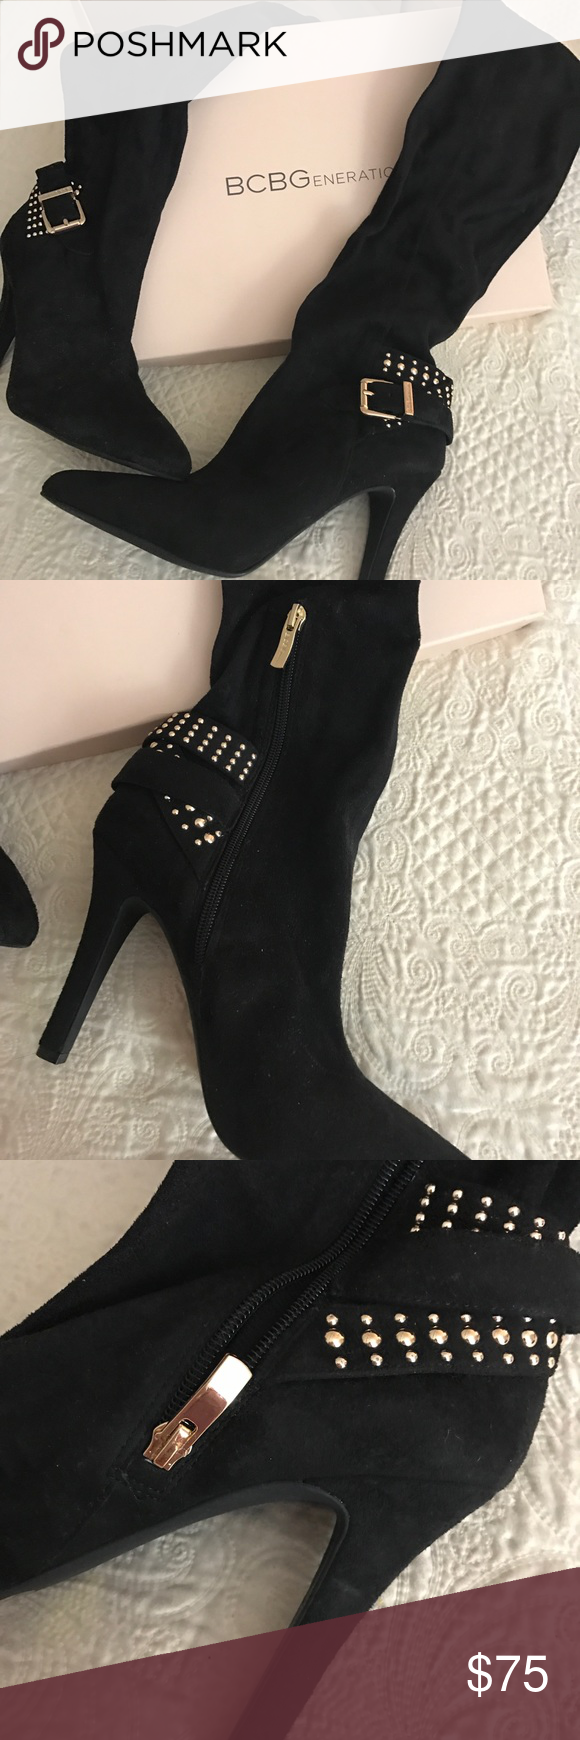 """BCBGeneration Black Suede Eileen Boot, Sz 10 New! BCBGeneration black suede (synthetic) Eileen boot. Shaft approx 14"""", heel 4"""", circumference approx 16"""". Super stylish, gold tone details. Pointed toe. Brand new, never worn! BCBGeneration Shoes Heeled Boots"""